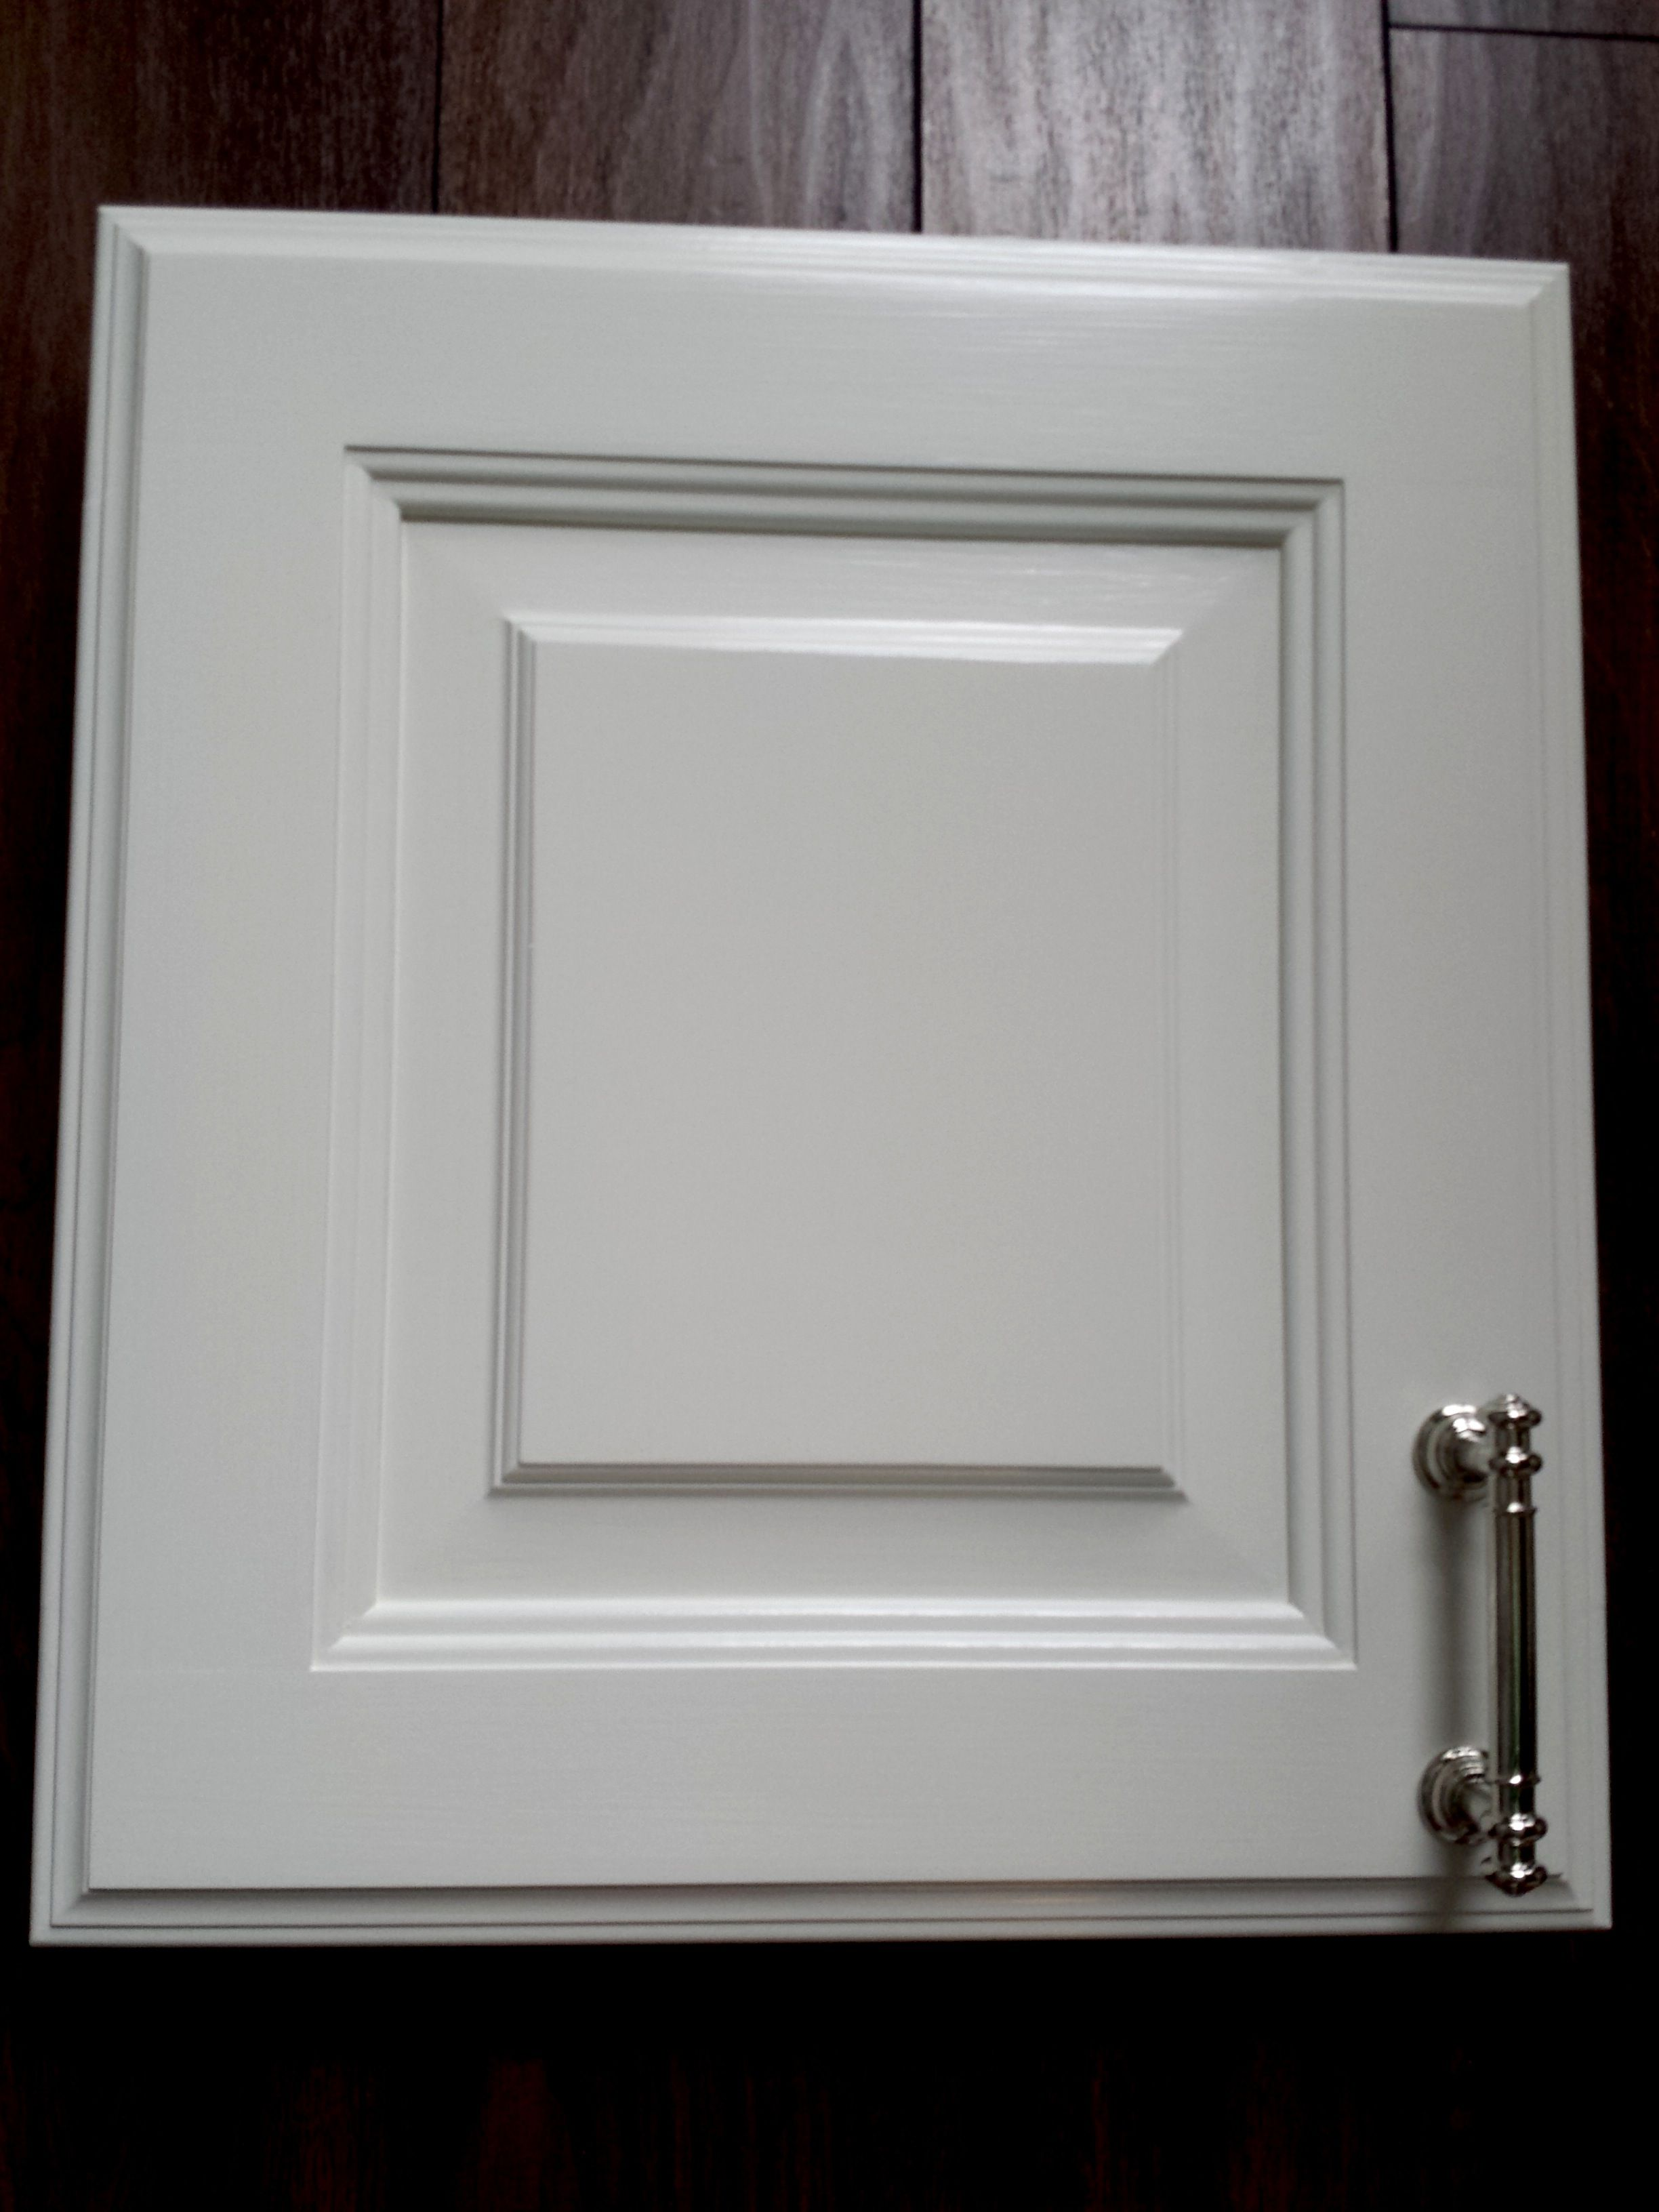 Benjamin Moore White Dove in Advance Paint. Hardware from